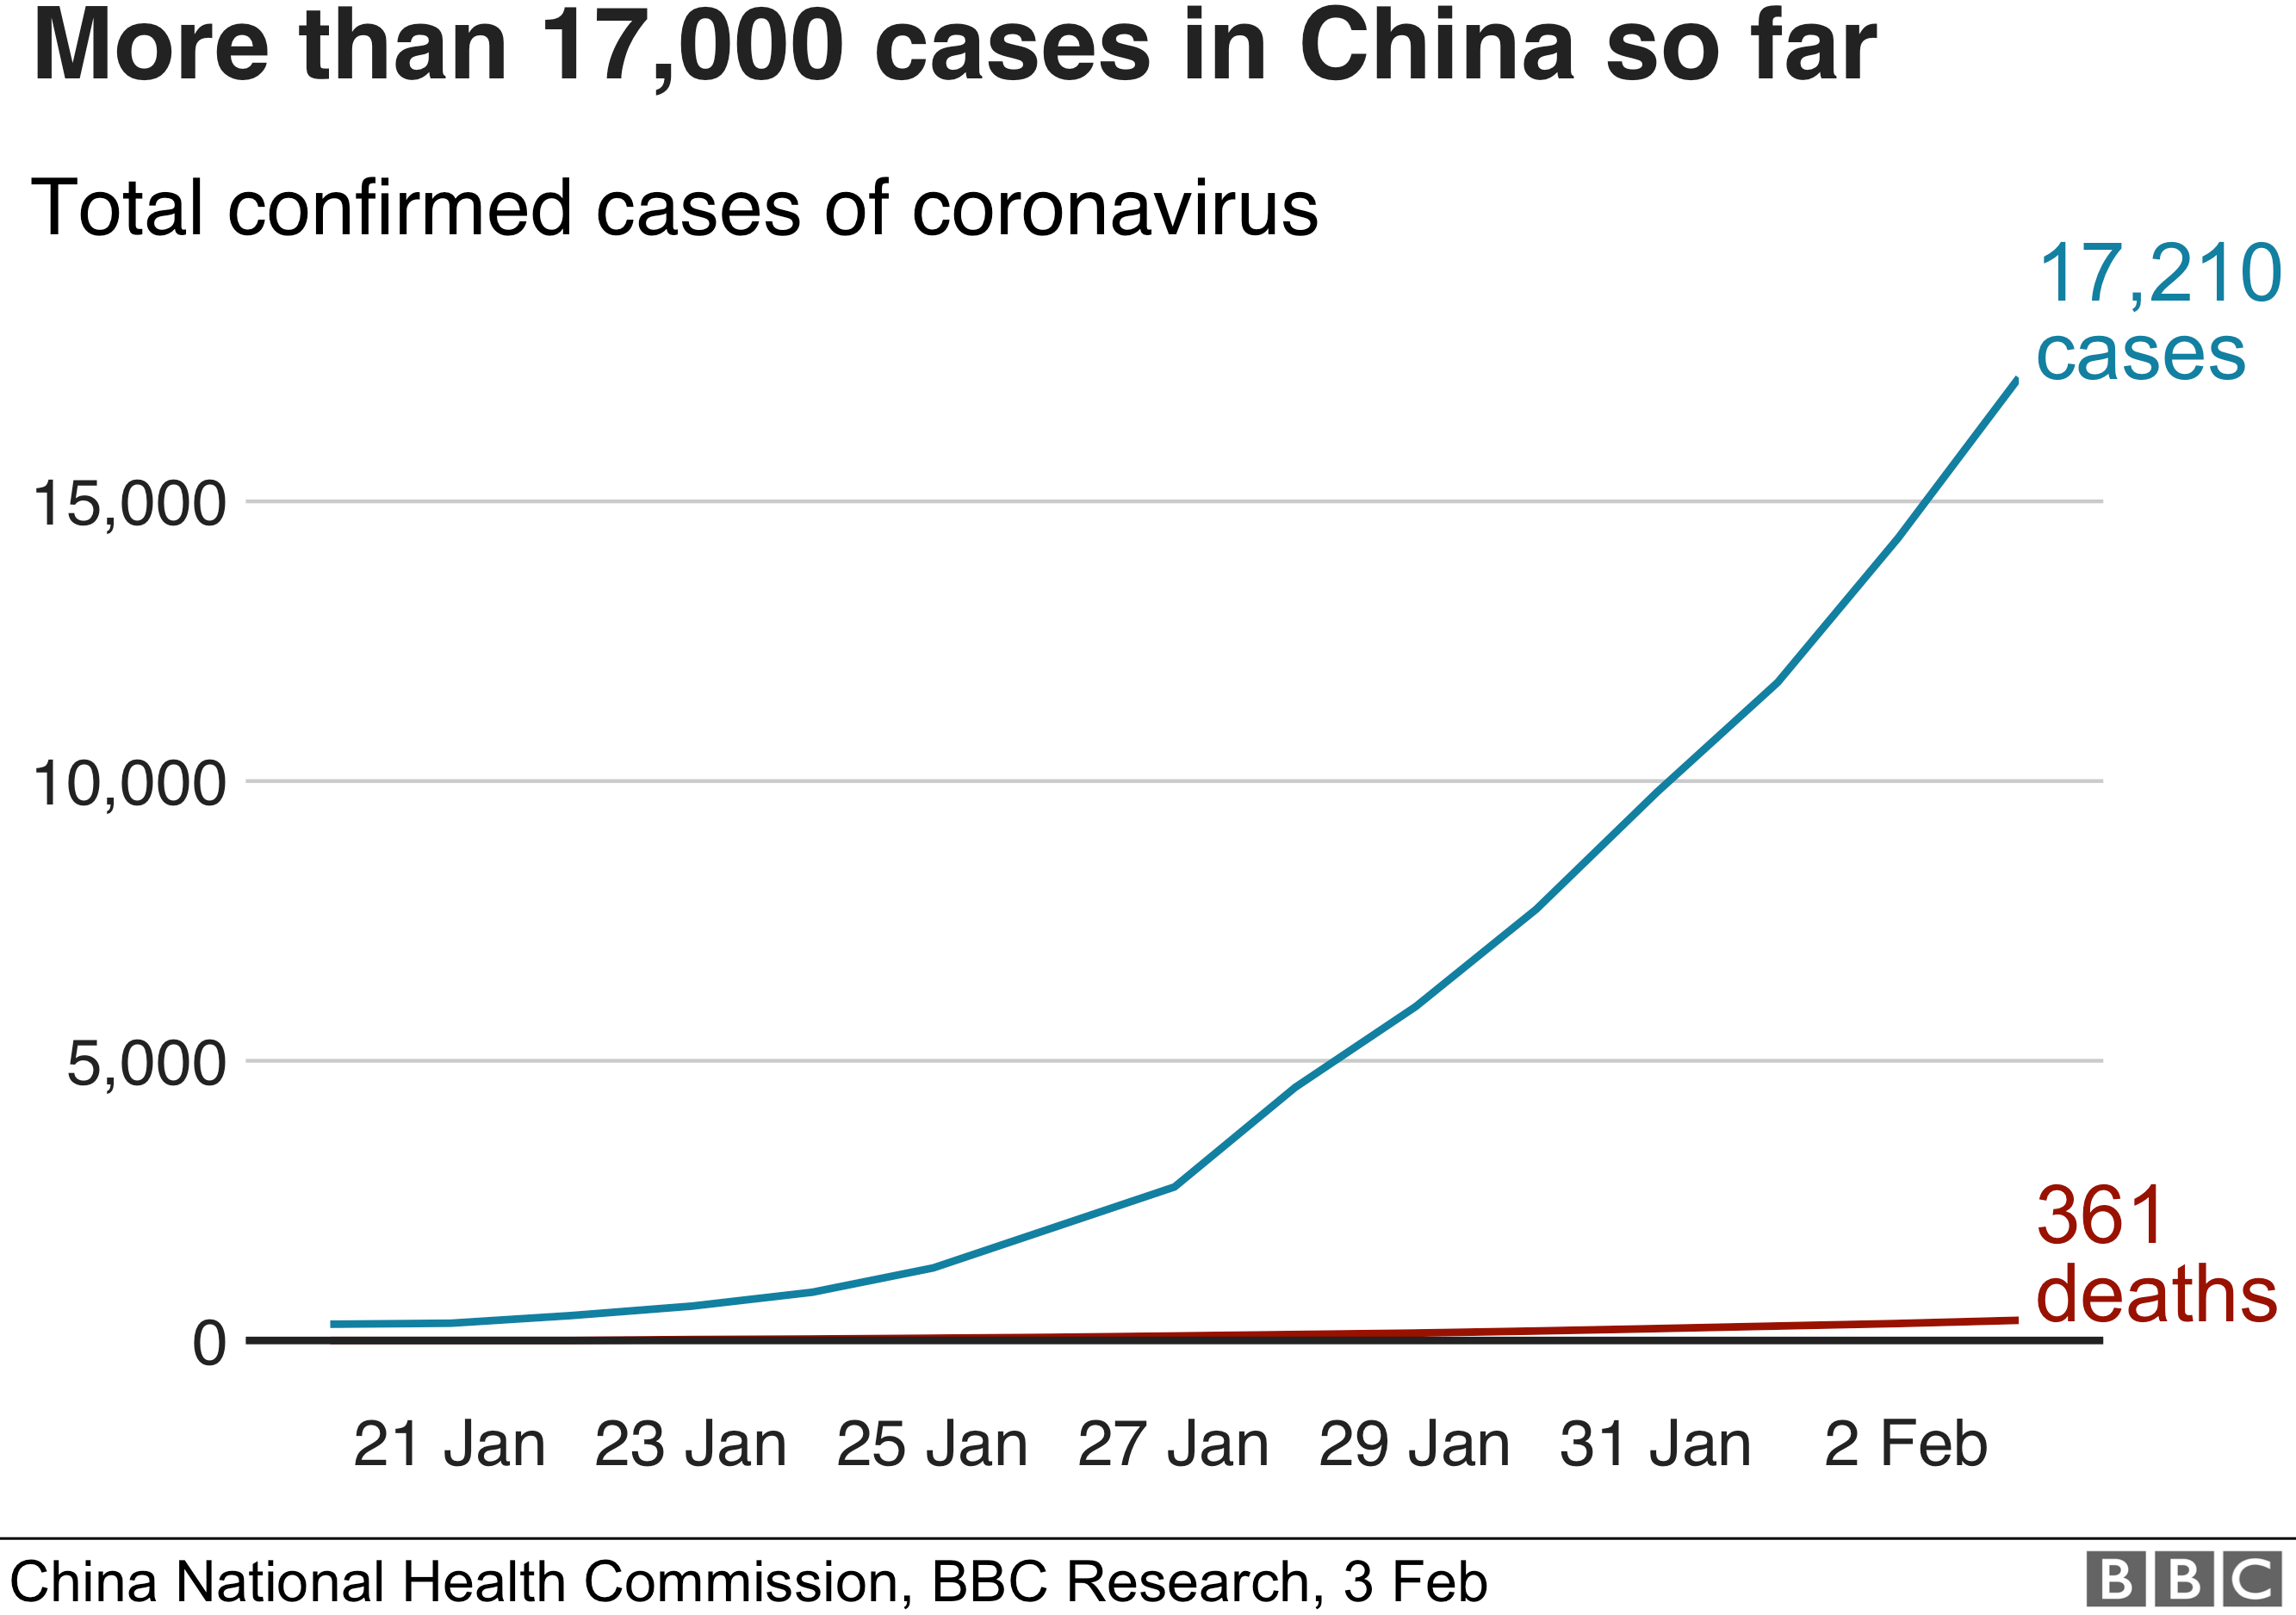 Cases in China are now over 17000. There have been 361 deaths